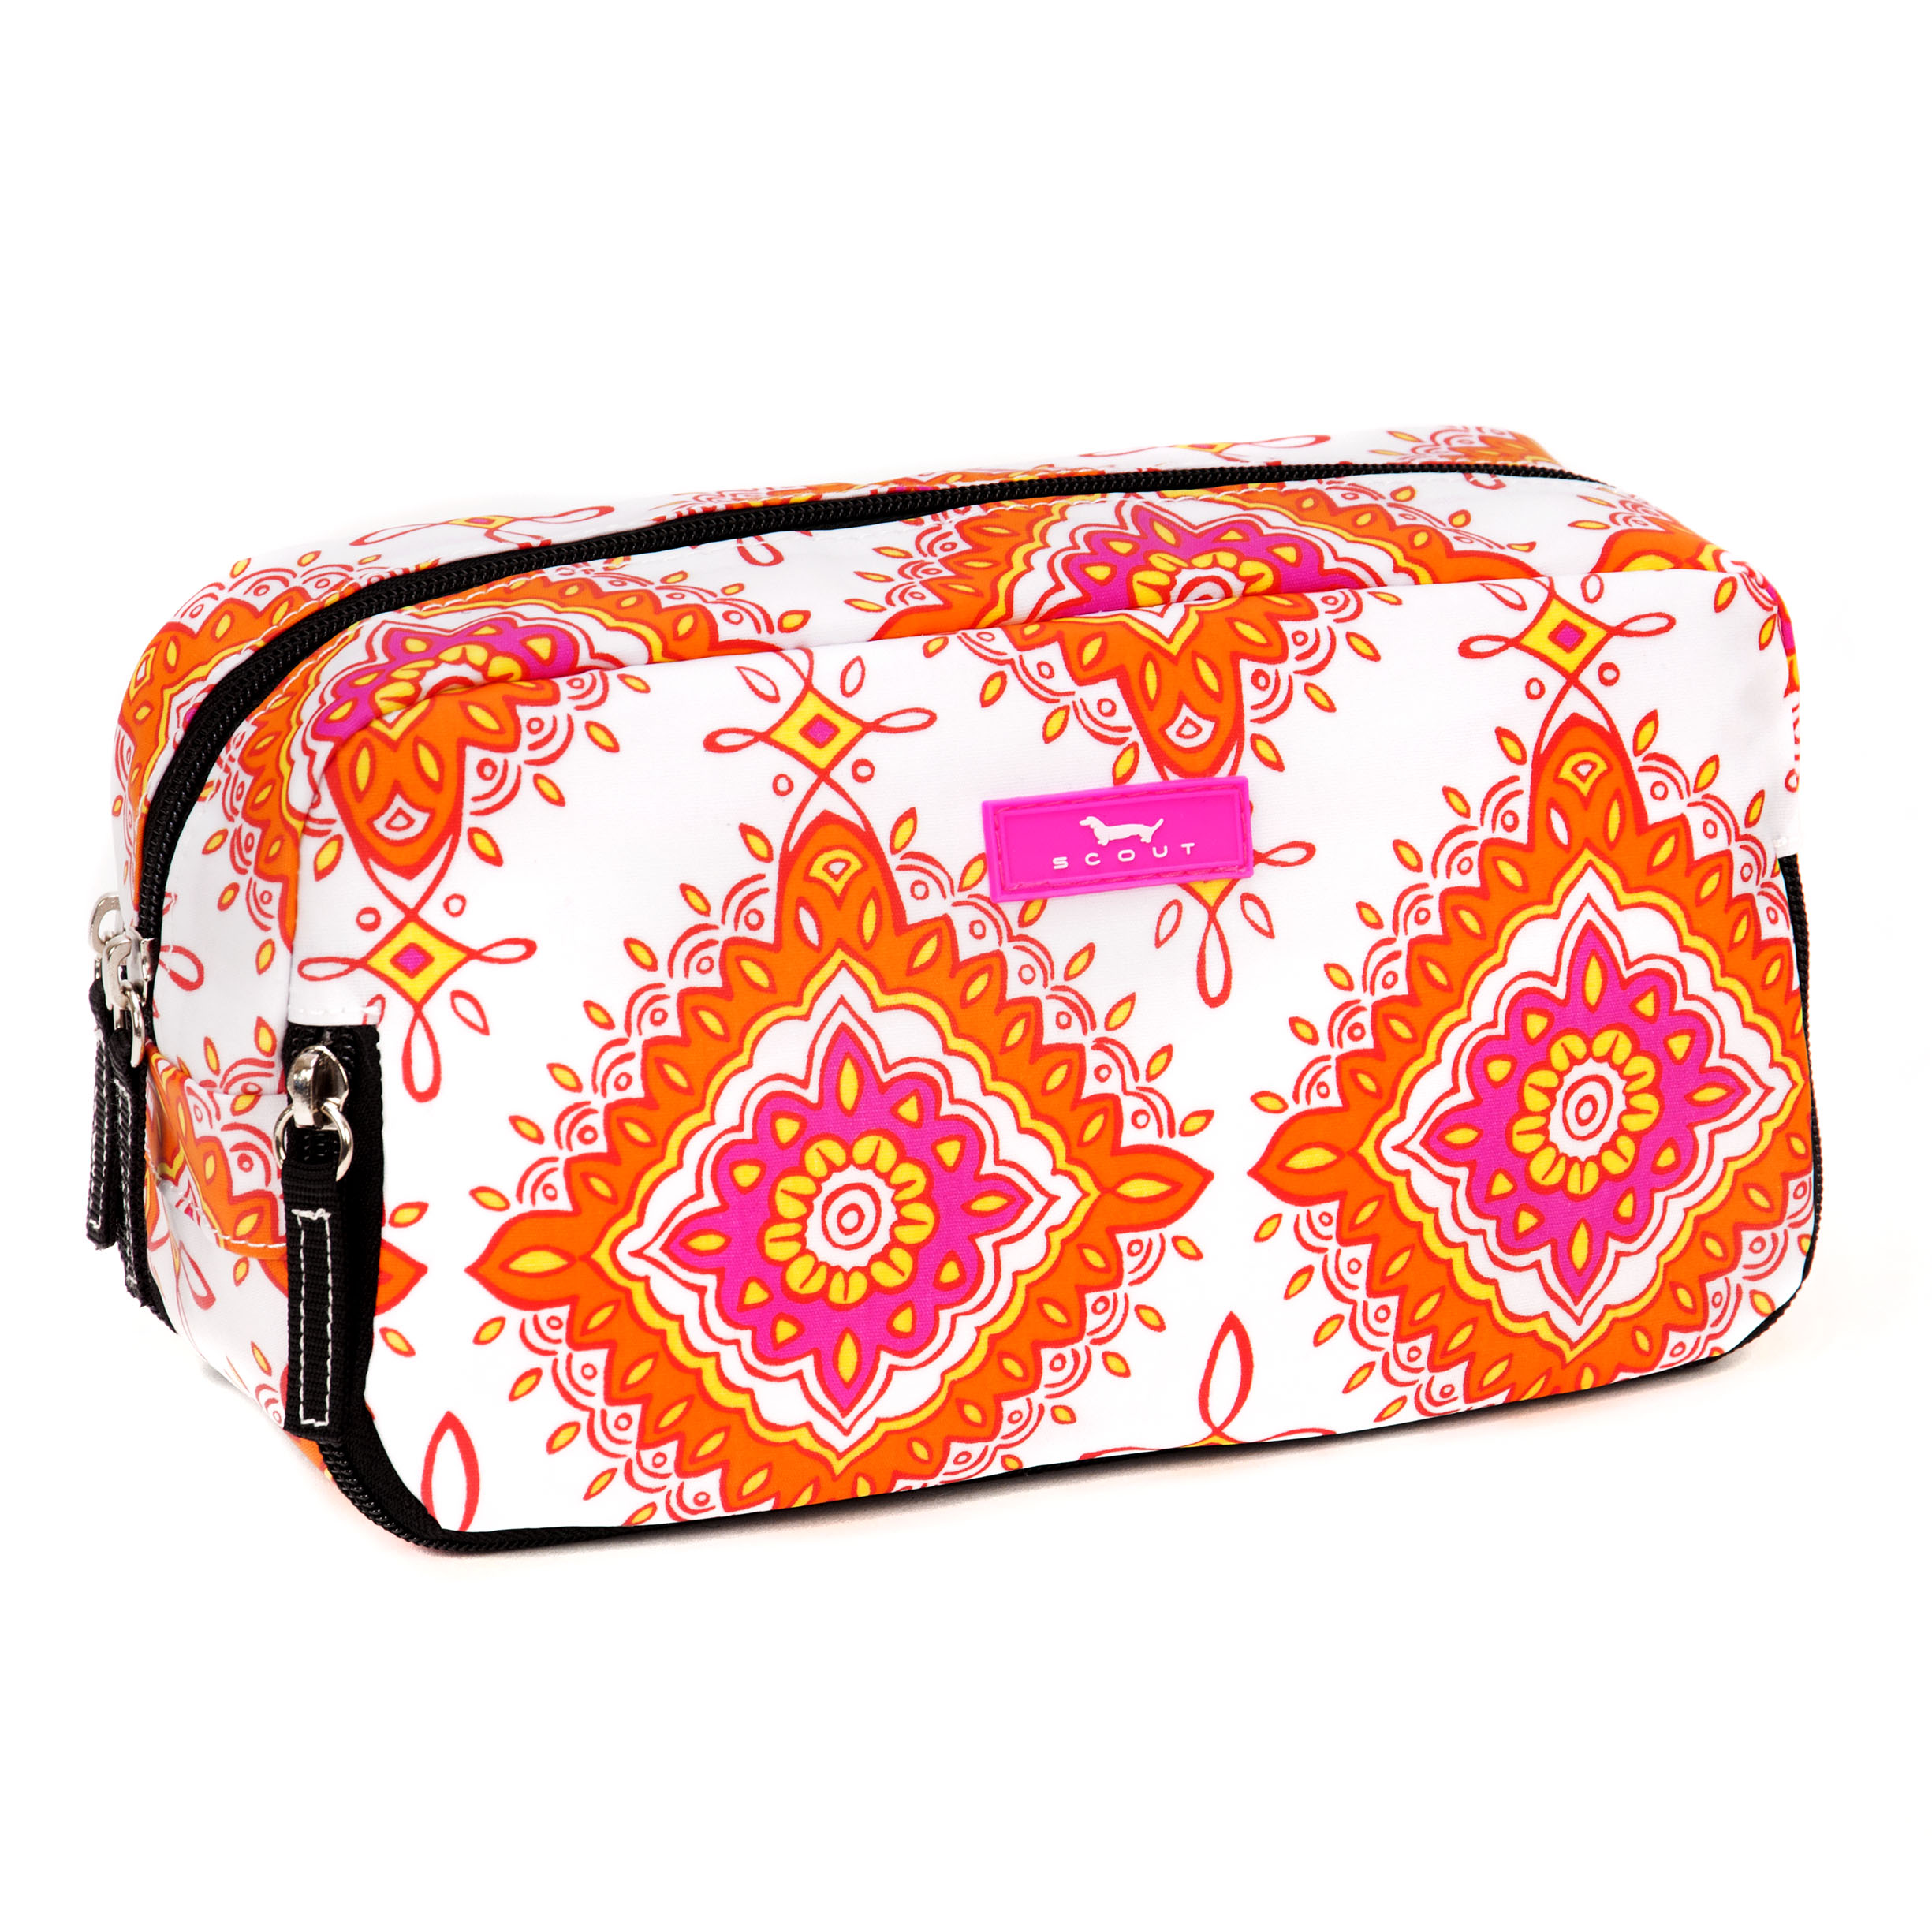 Wedding Gift Bags Mumbai : way cosmetic bag mumbai mango 24 00 3 way bag three weh bag n 1 ...